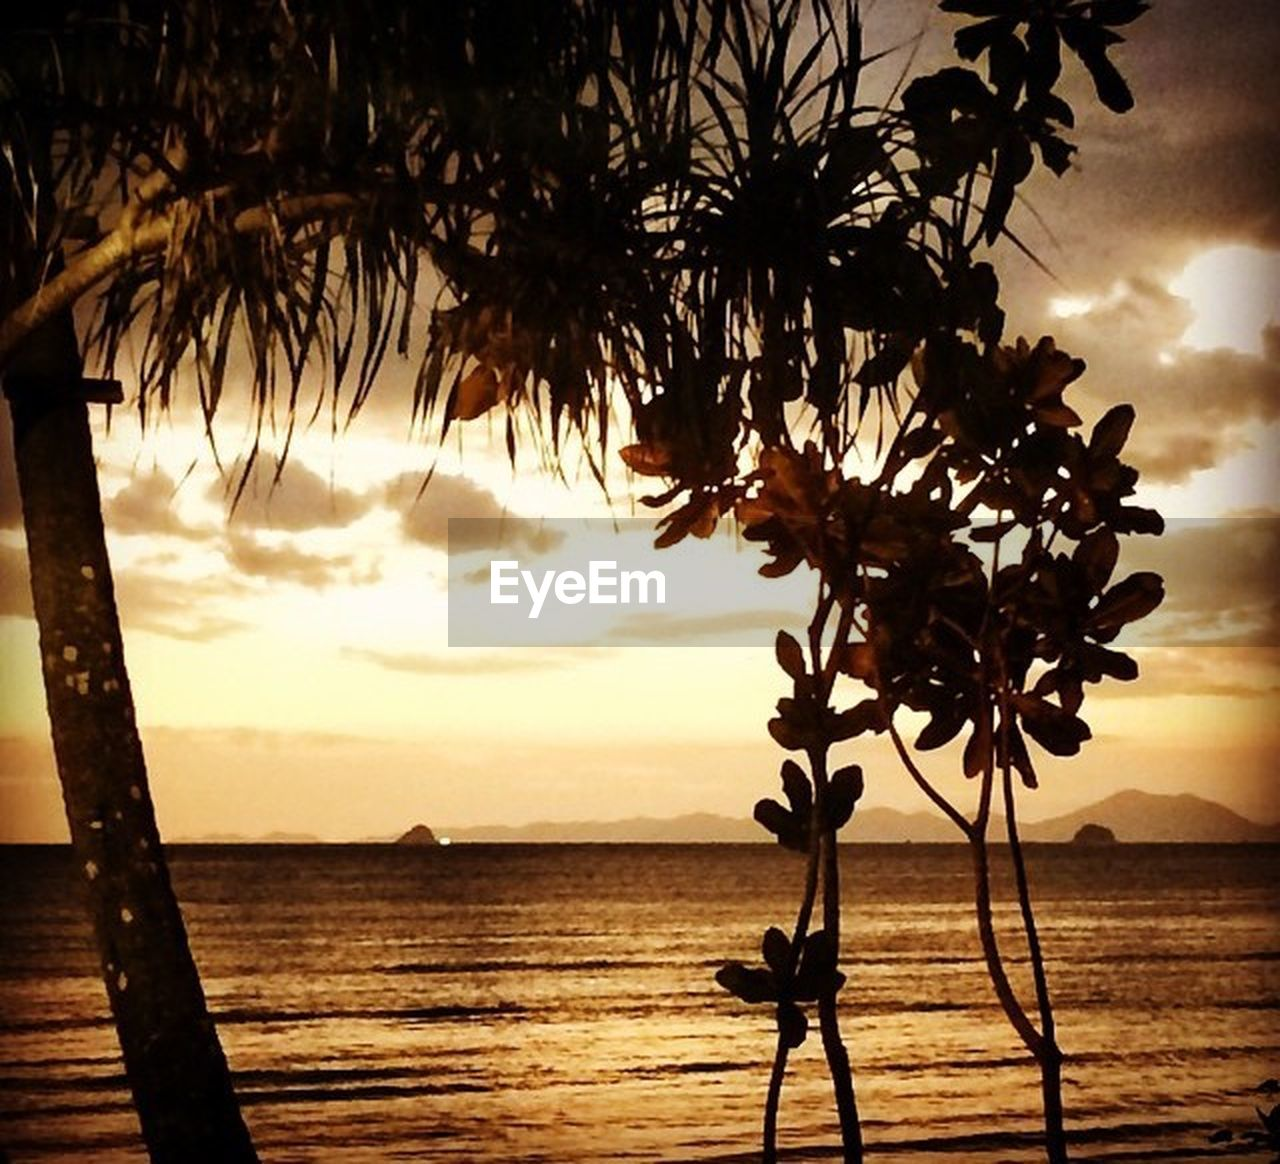 tree, sea, sunset, silhouette, beauty in nature, nature, branch, tree trunk, tranquil scene, scenics, tranquility, sky, water, outdoors, palm tree, no people, beach, horizon over water, growth, day